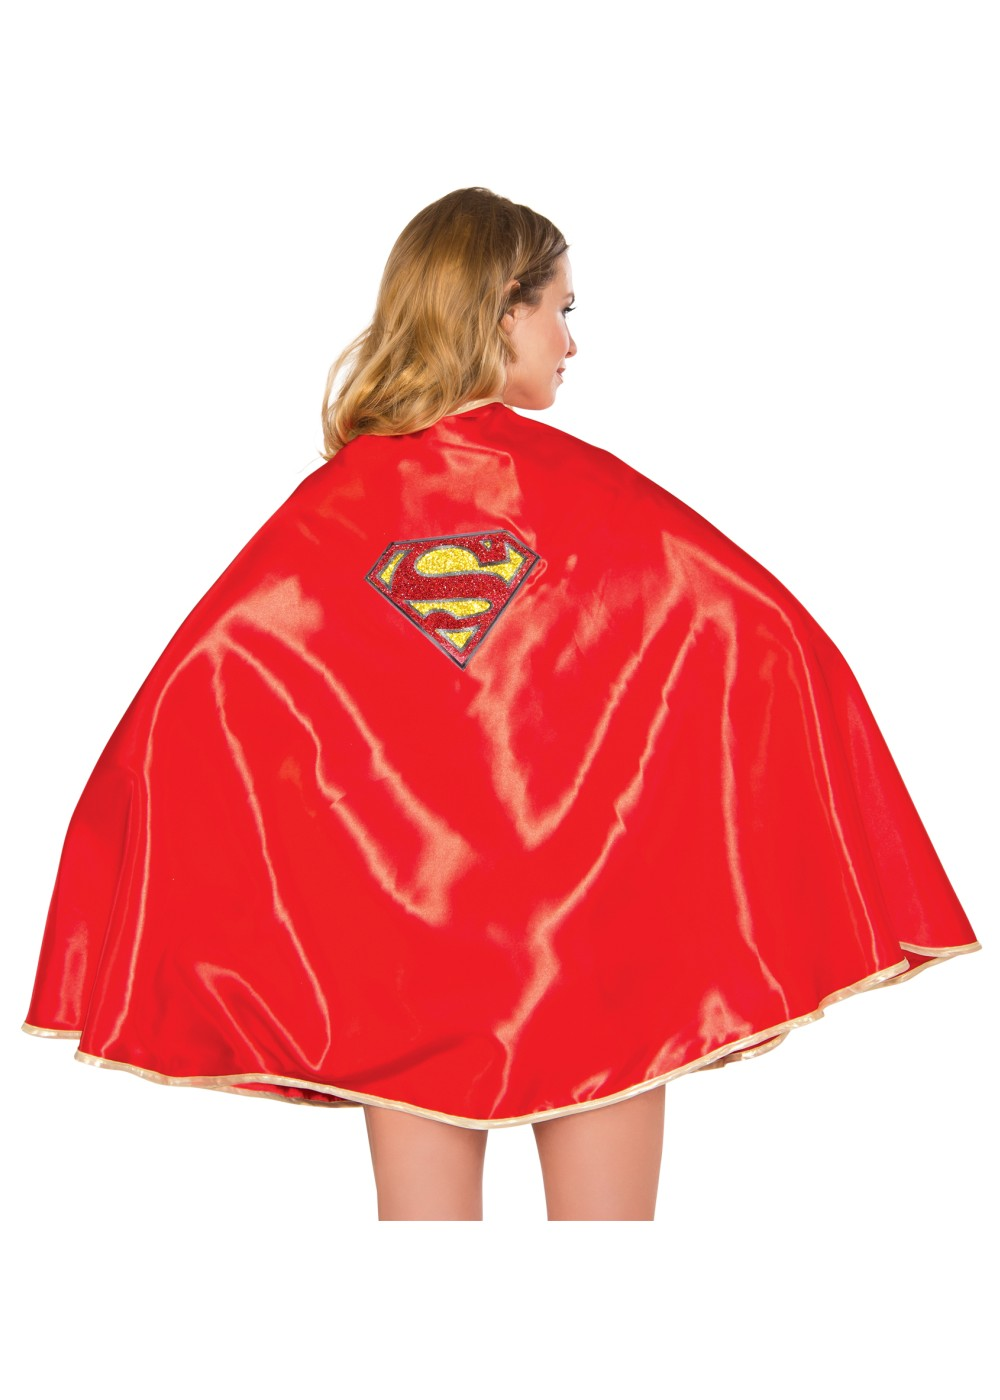 Supergirl 30 Inch Women Cape